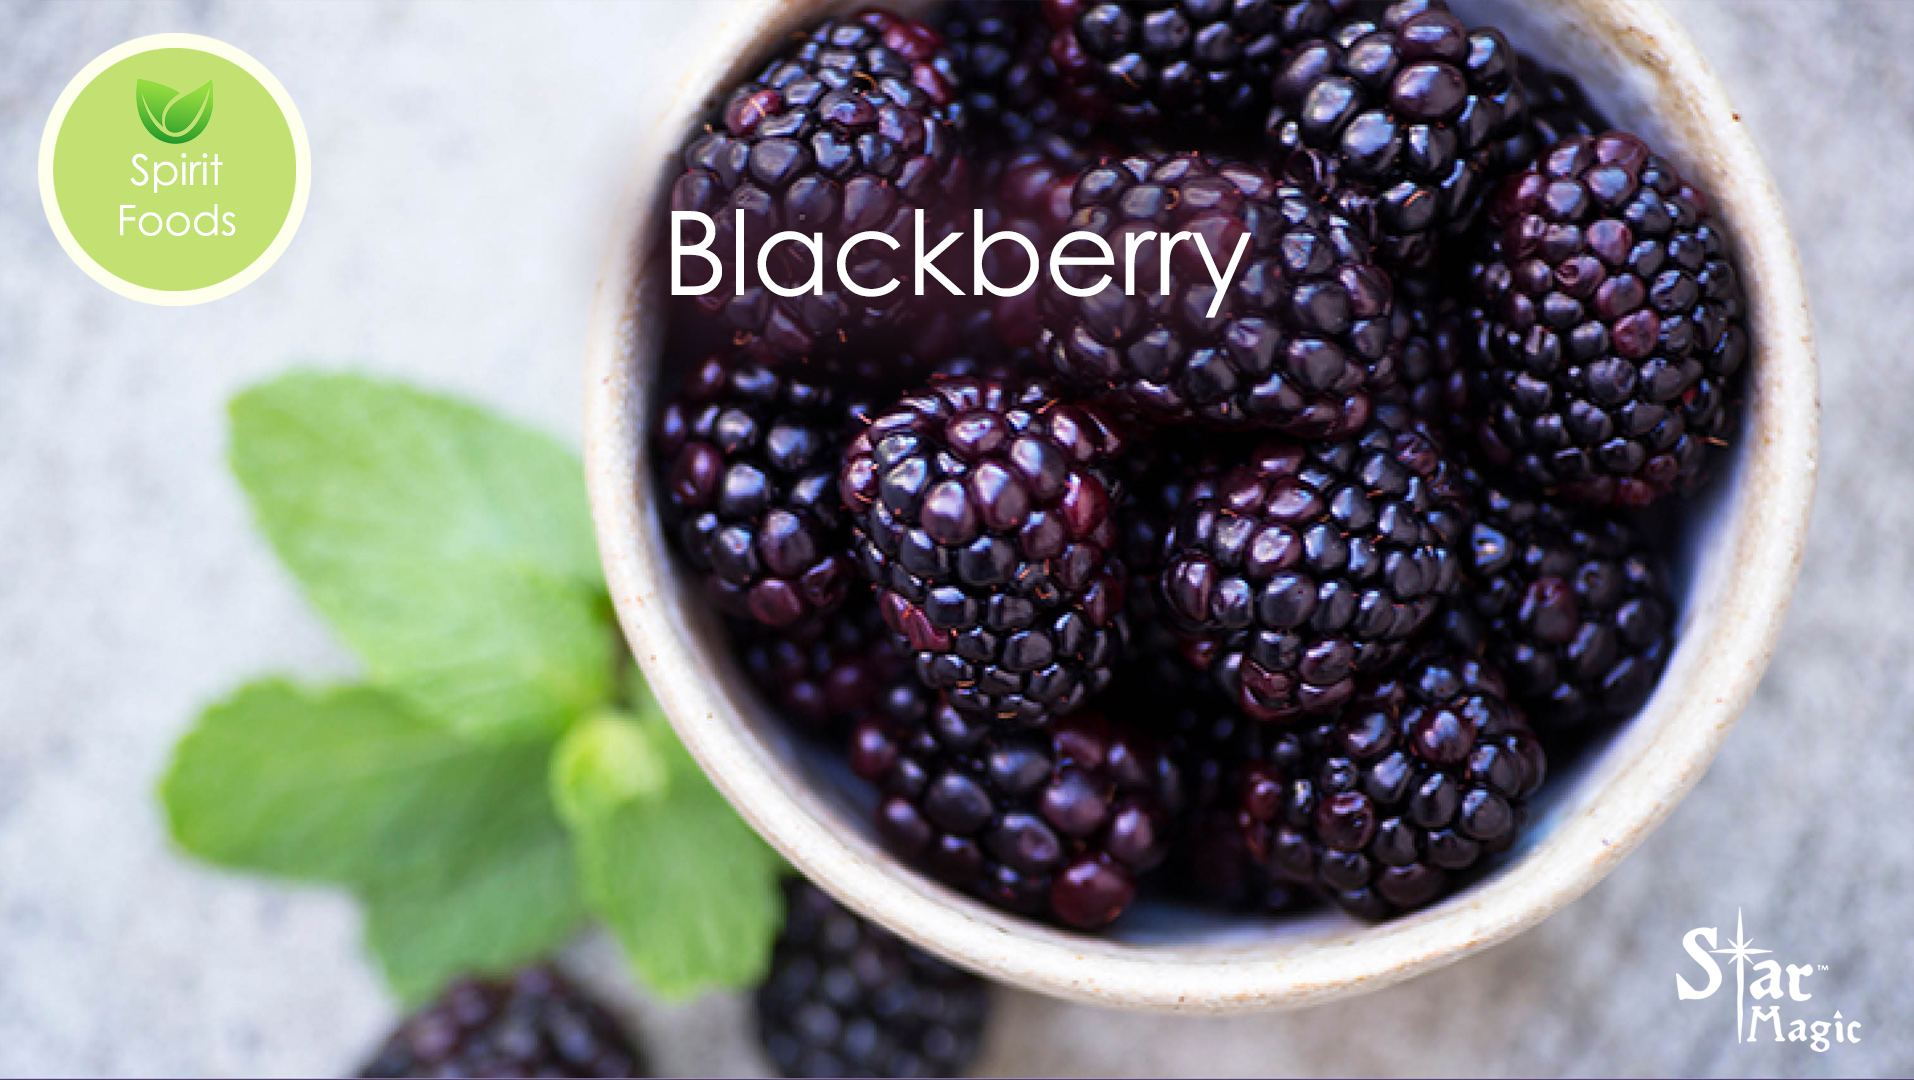 Spirit Food – Blackberries